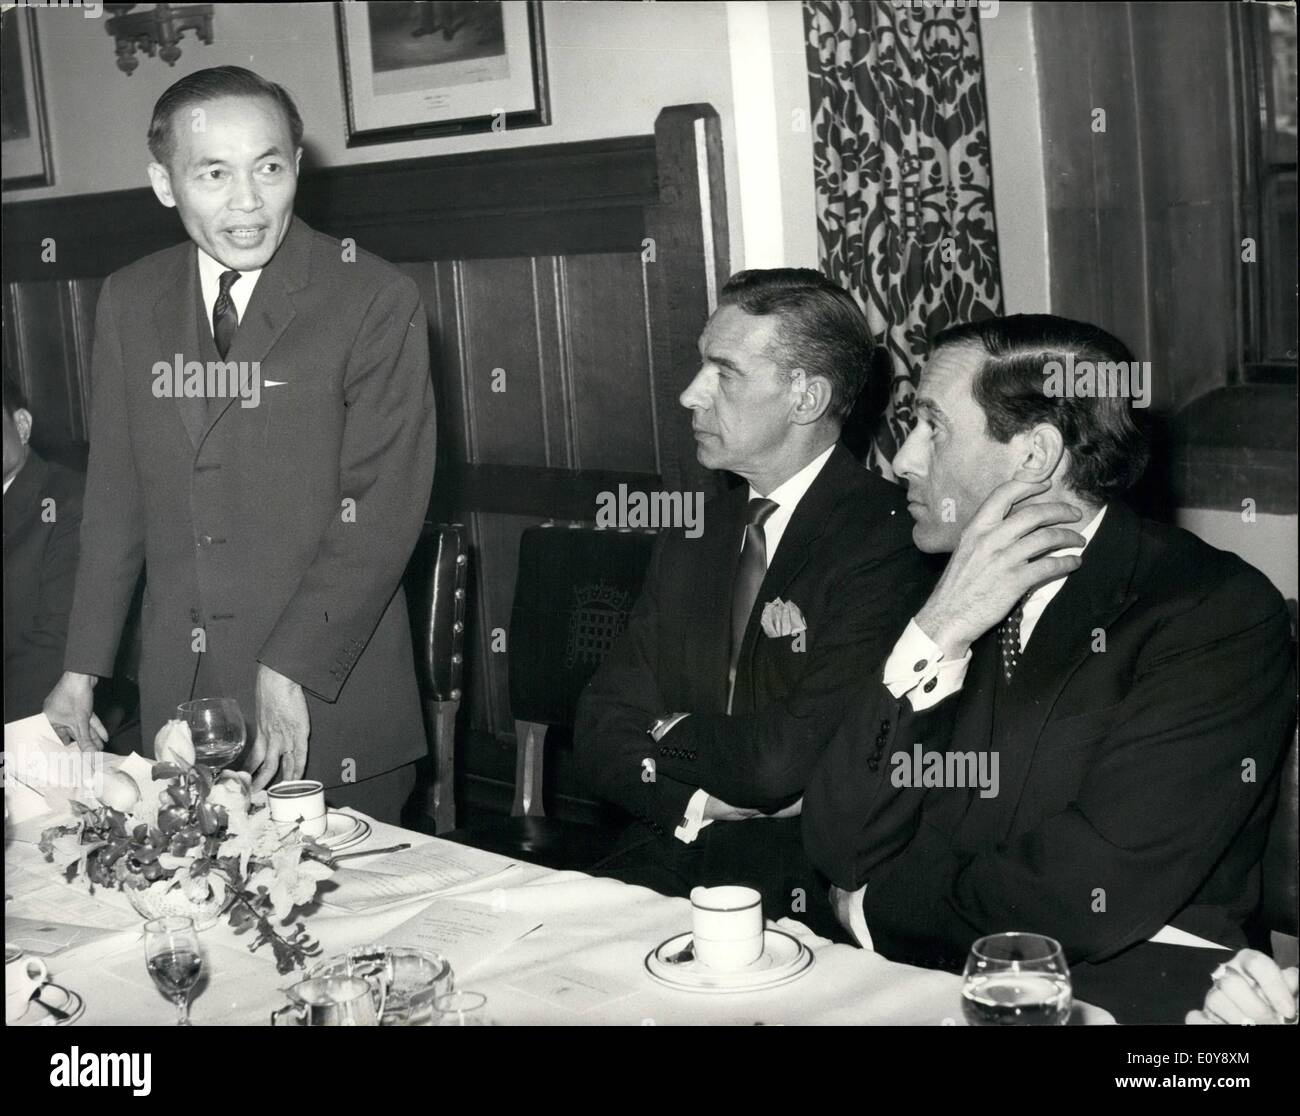 Feb. 02, 1969 - Liberals Quiz South Vietnam MP's: The leader of the Liberal Party Jeremy Thorpe and a number of the fellow Liberals spent their lunch hour today at the House of Commons with members of the South Vietnamese government which they had criticized so often. The lunch had been set up as the result of discussion some months ago between the South Vietnamese Ambassador and Peter Bessel, the Liberal who sits for Bedmin. The Ambassador commented on criticisms which had been leveled at his government by Liberals. Mr - Stock Image